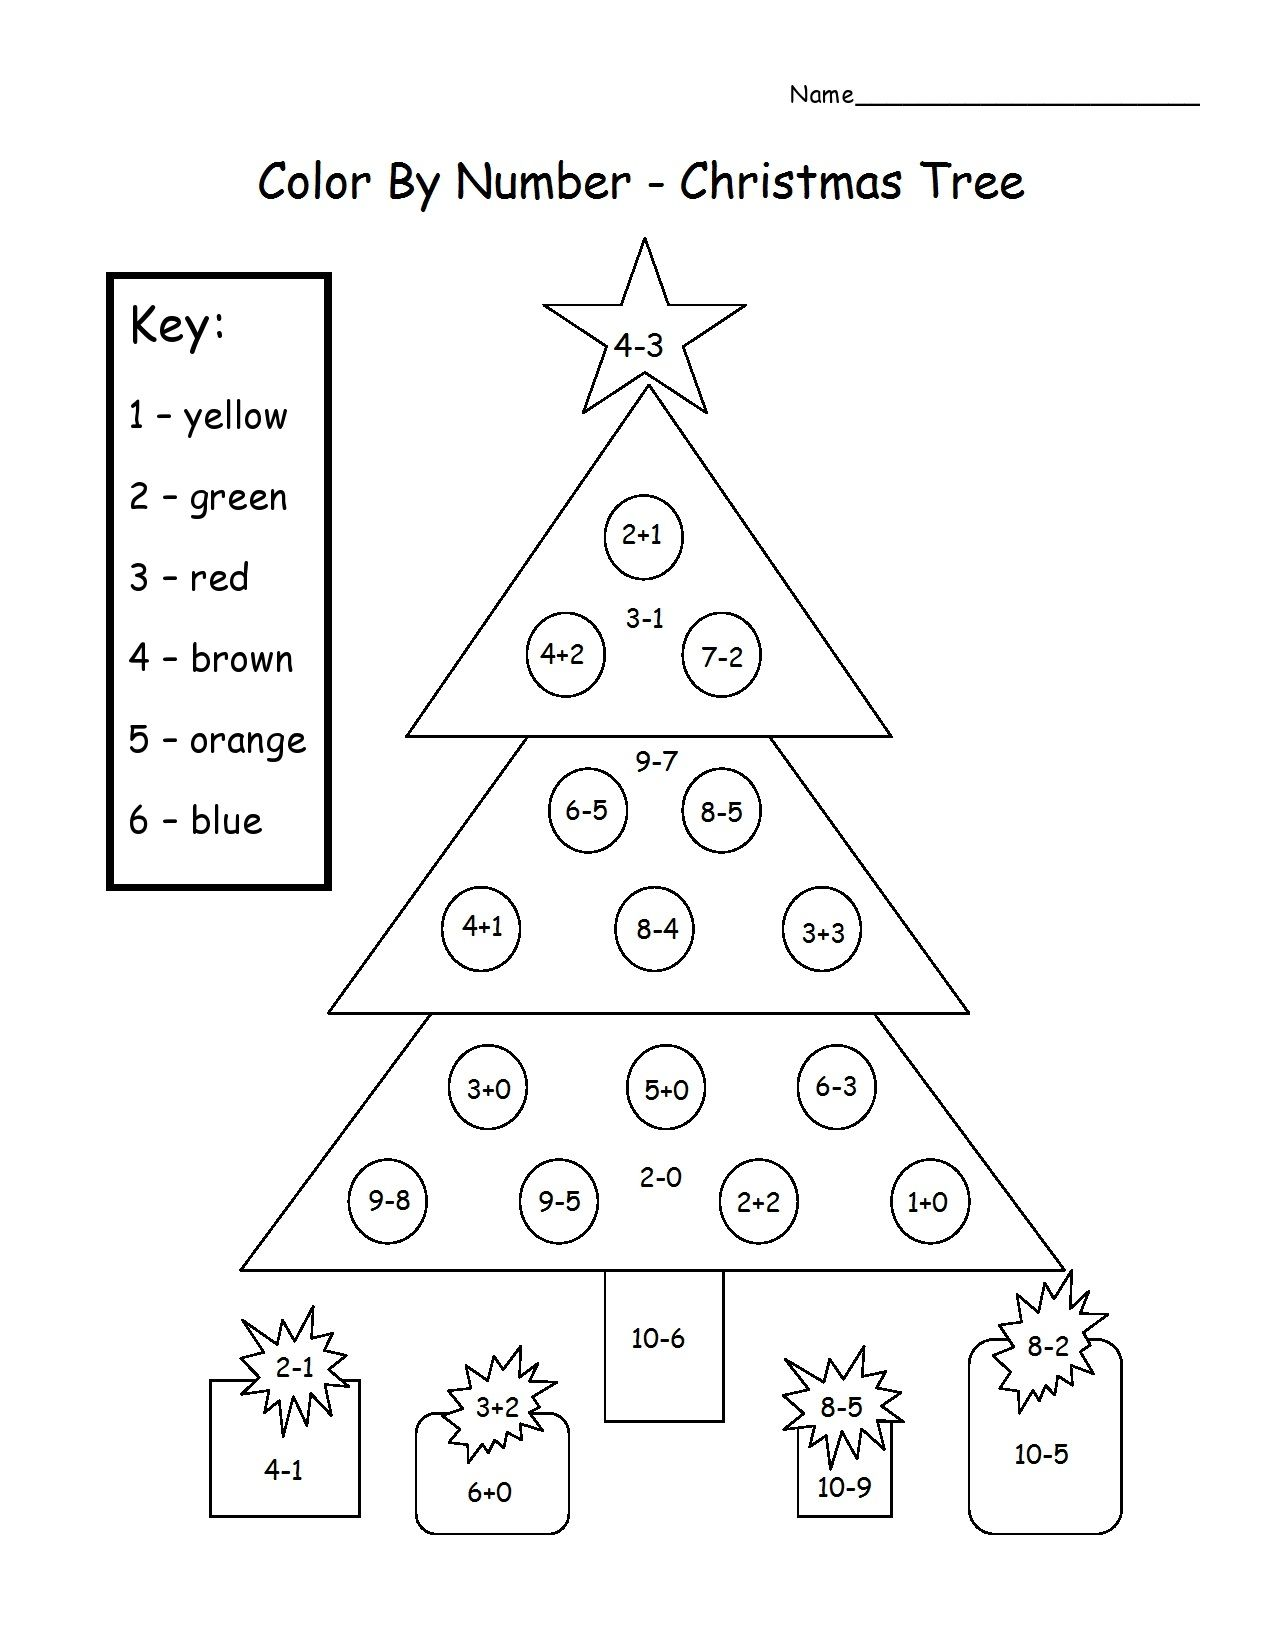 Coloring Pages Christmas Tree Mathe Gallery